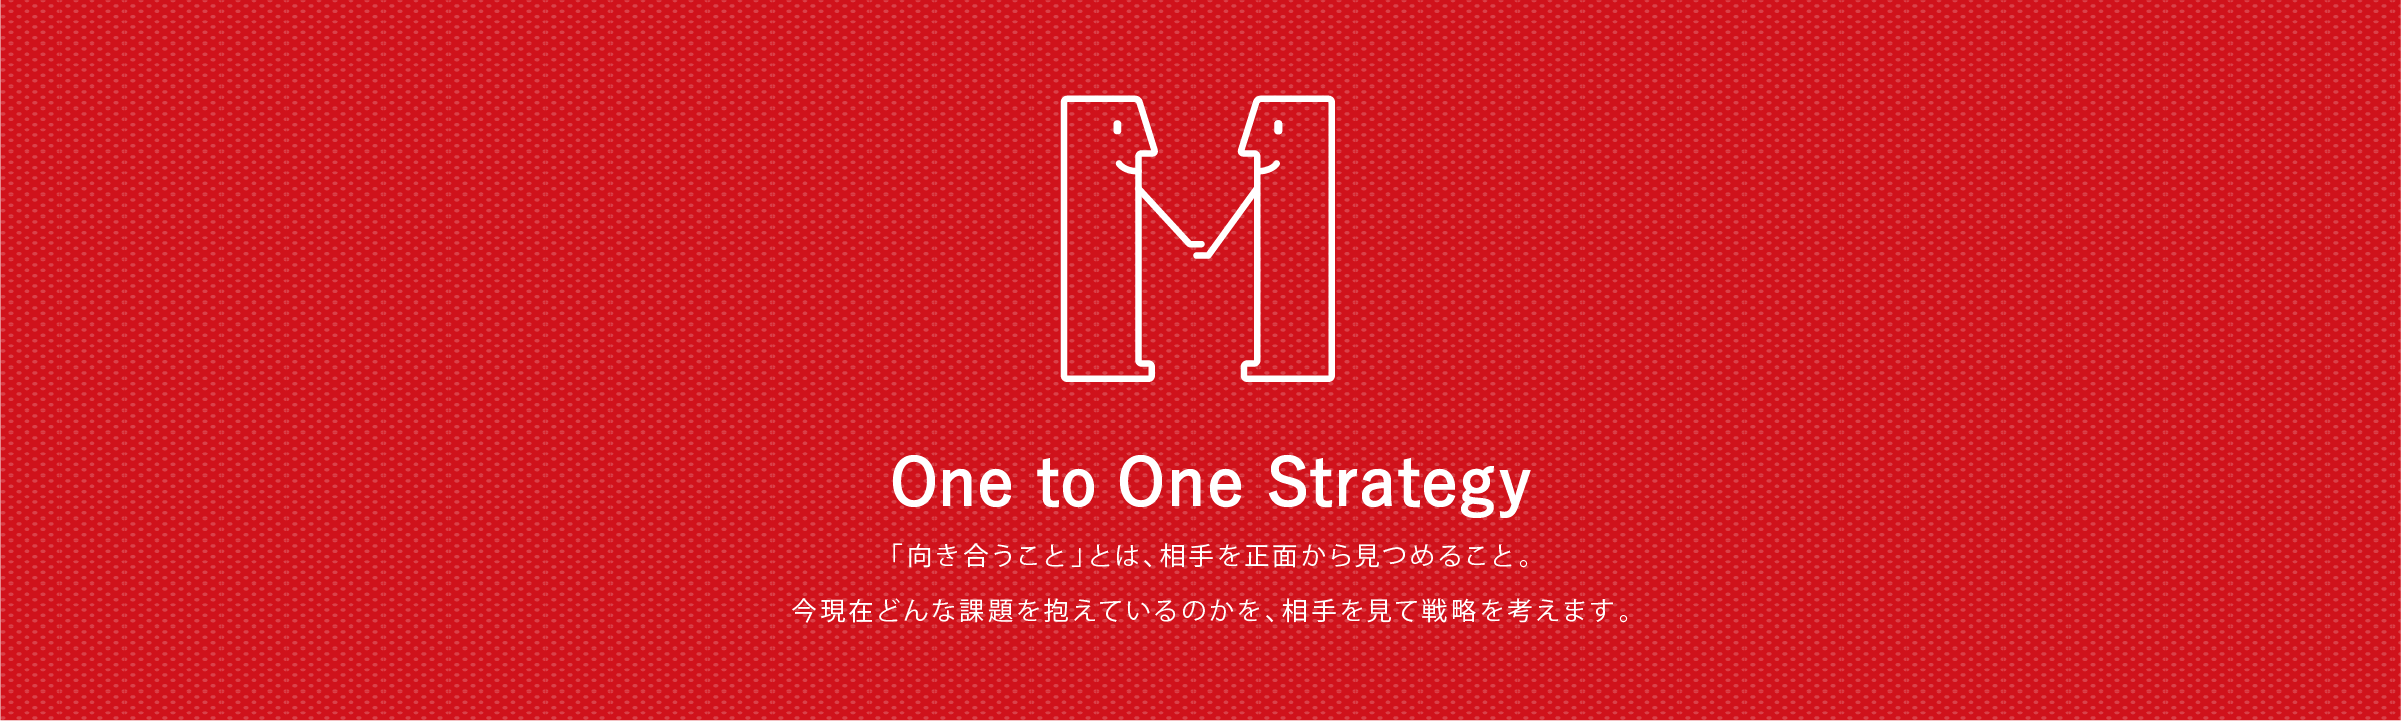 One to One Strategy